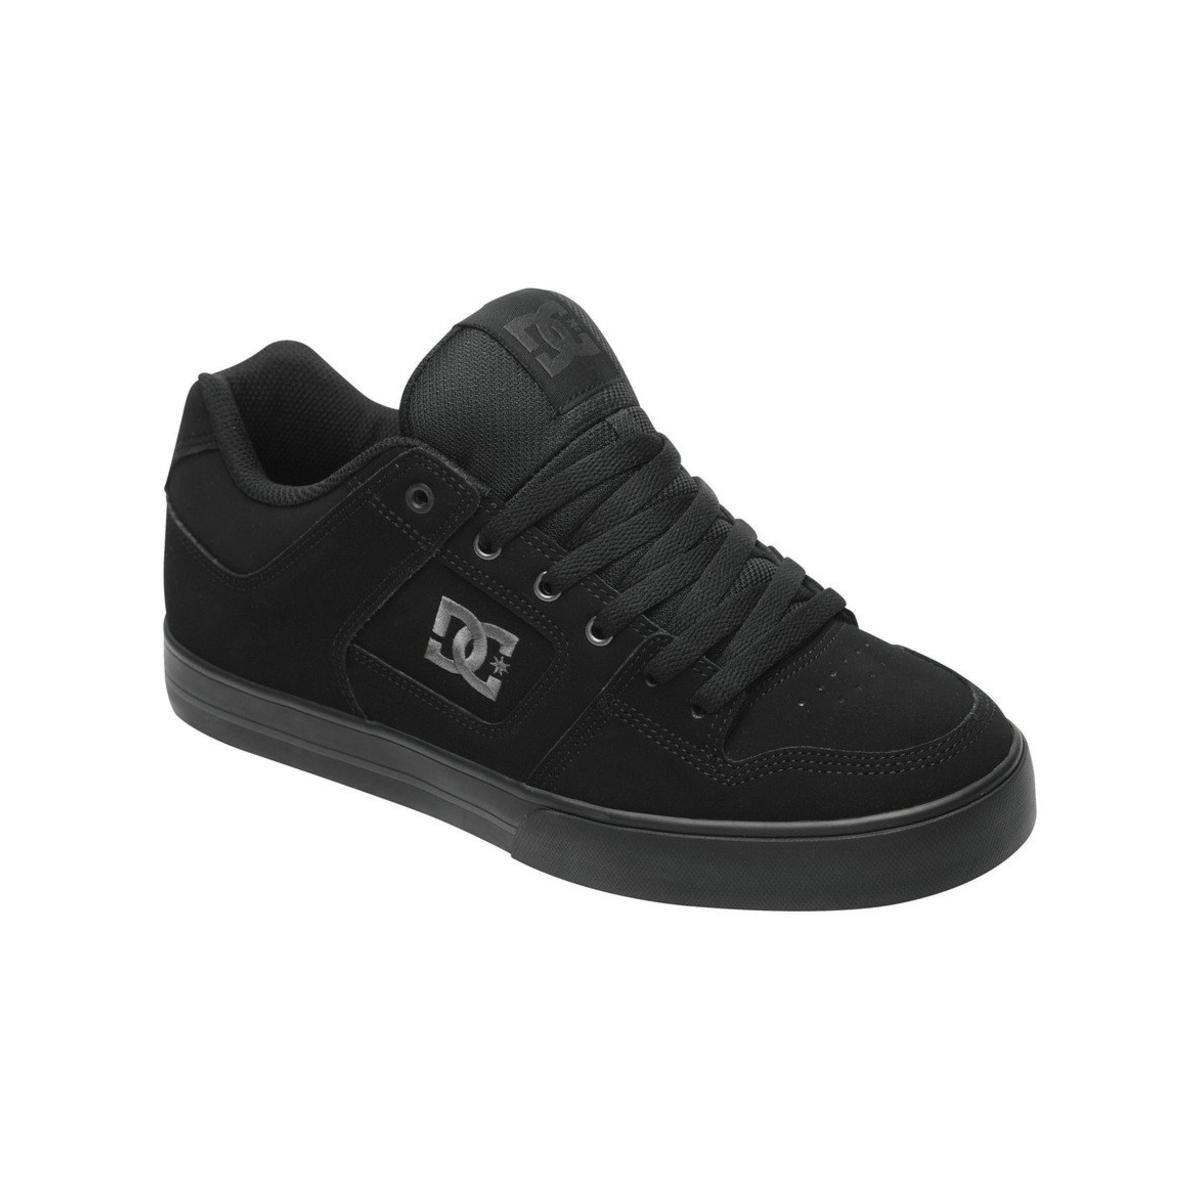 DC PURE Shoes Skate MENS Black Pirate Black Dark Grey SIZE 8.5